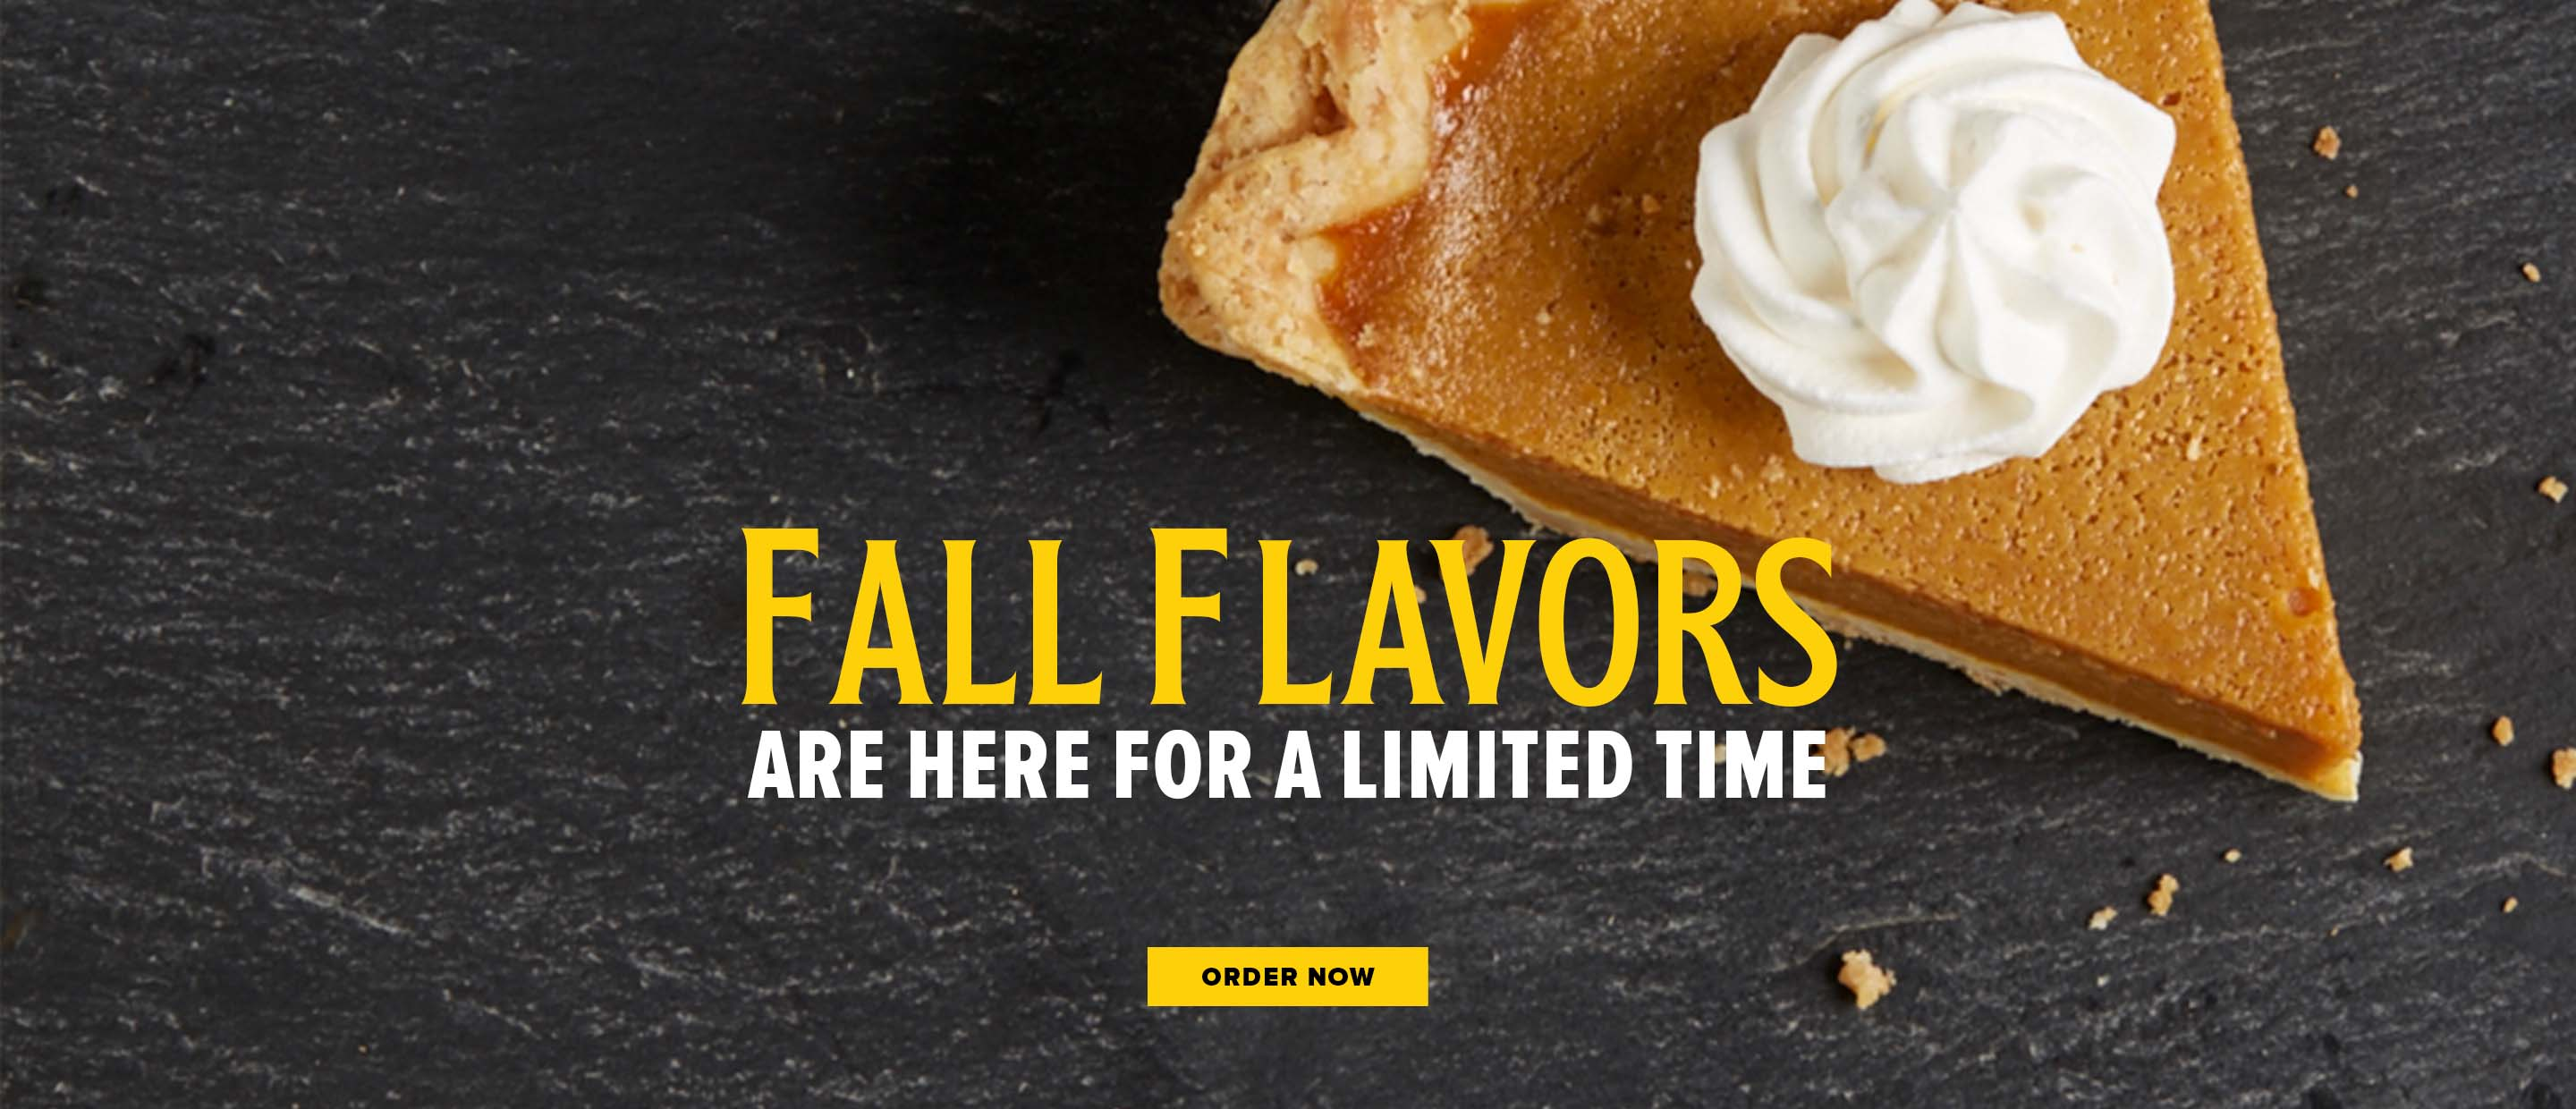 Fall Flavors are here for a limited time! Order now.